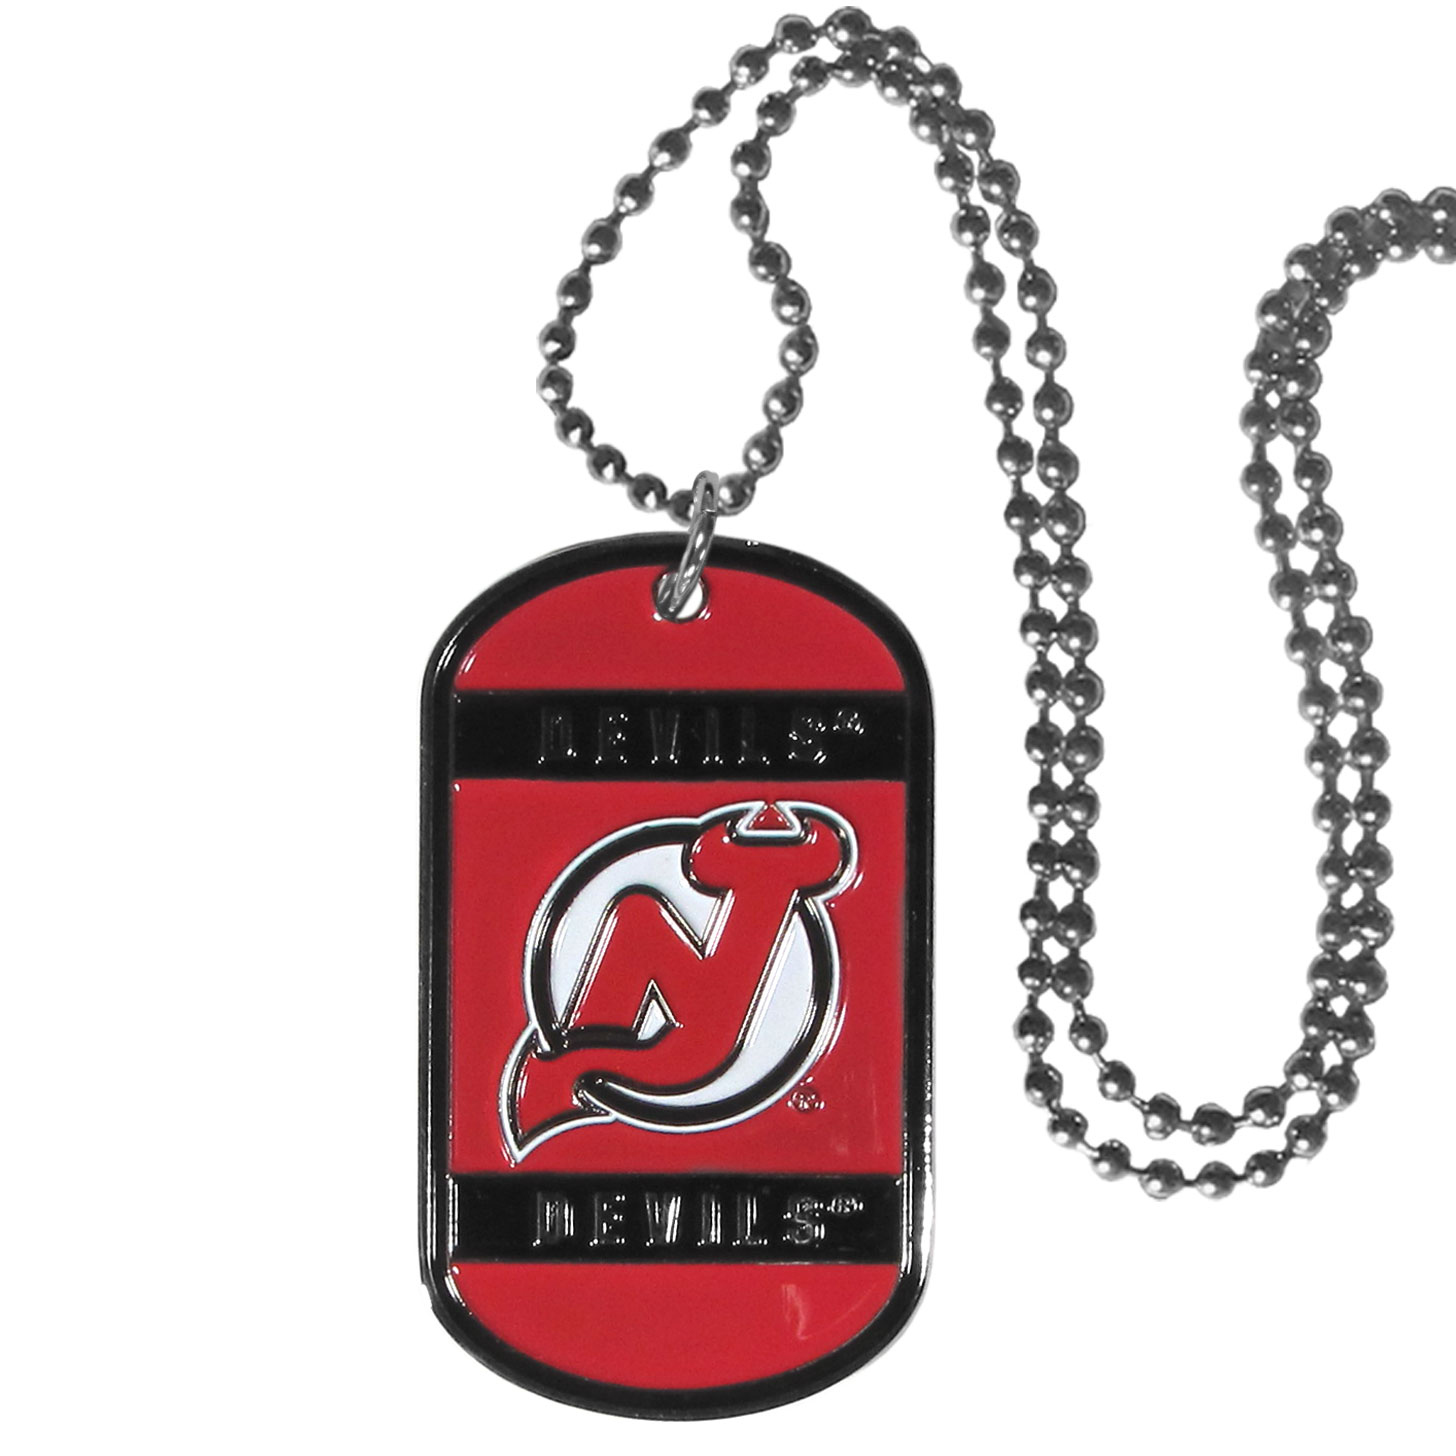 New Jersey Devils® Tag Necklace - Expertly crafted New Jersey Devils® tag necklaces featuring fine detailing and a hand enameled finish with chrome accents. 26 inch chain.